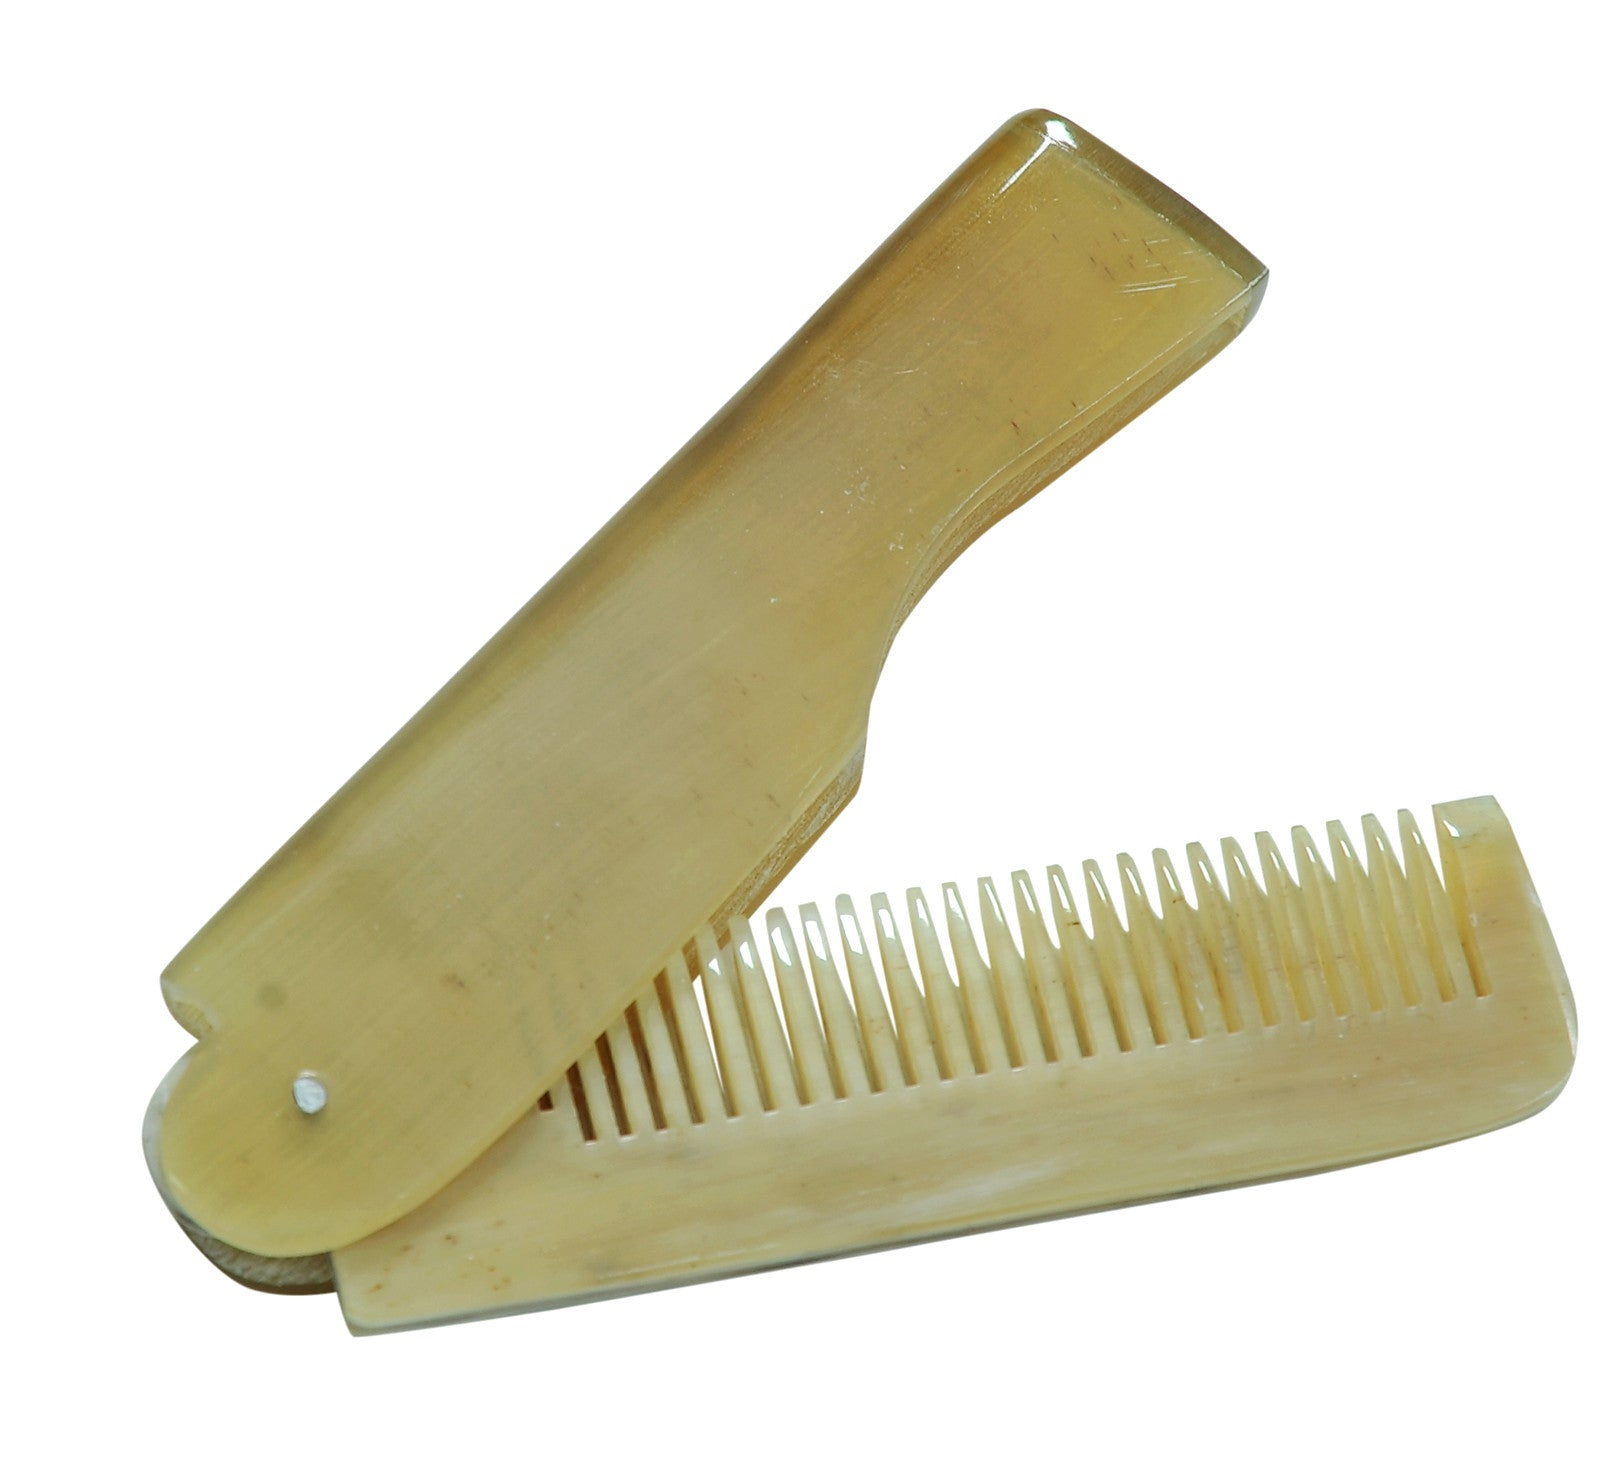 Marycrafts elegant Anti-frizz Pocket Folding Hair Brush Horn Comb